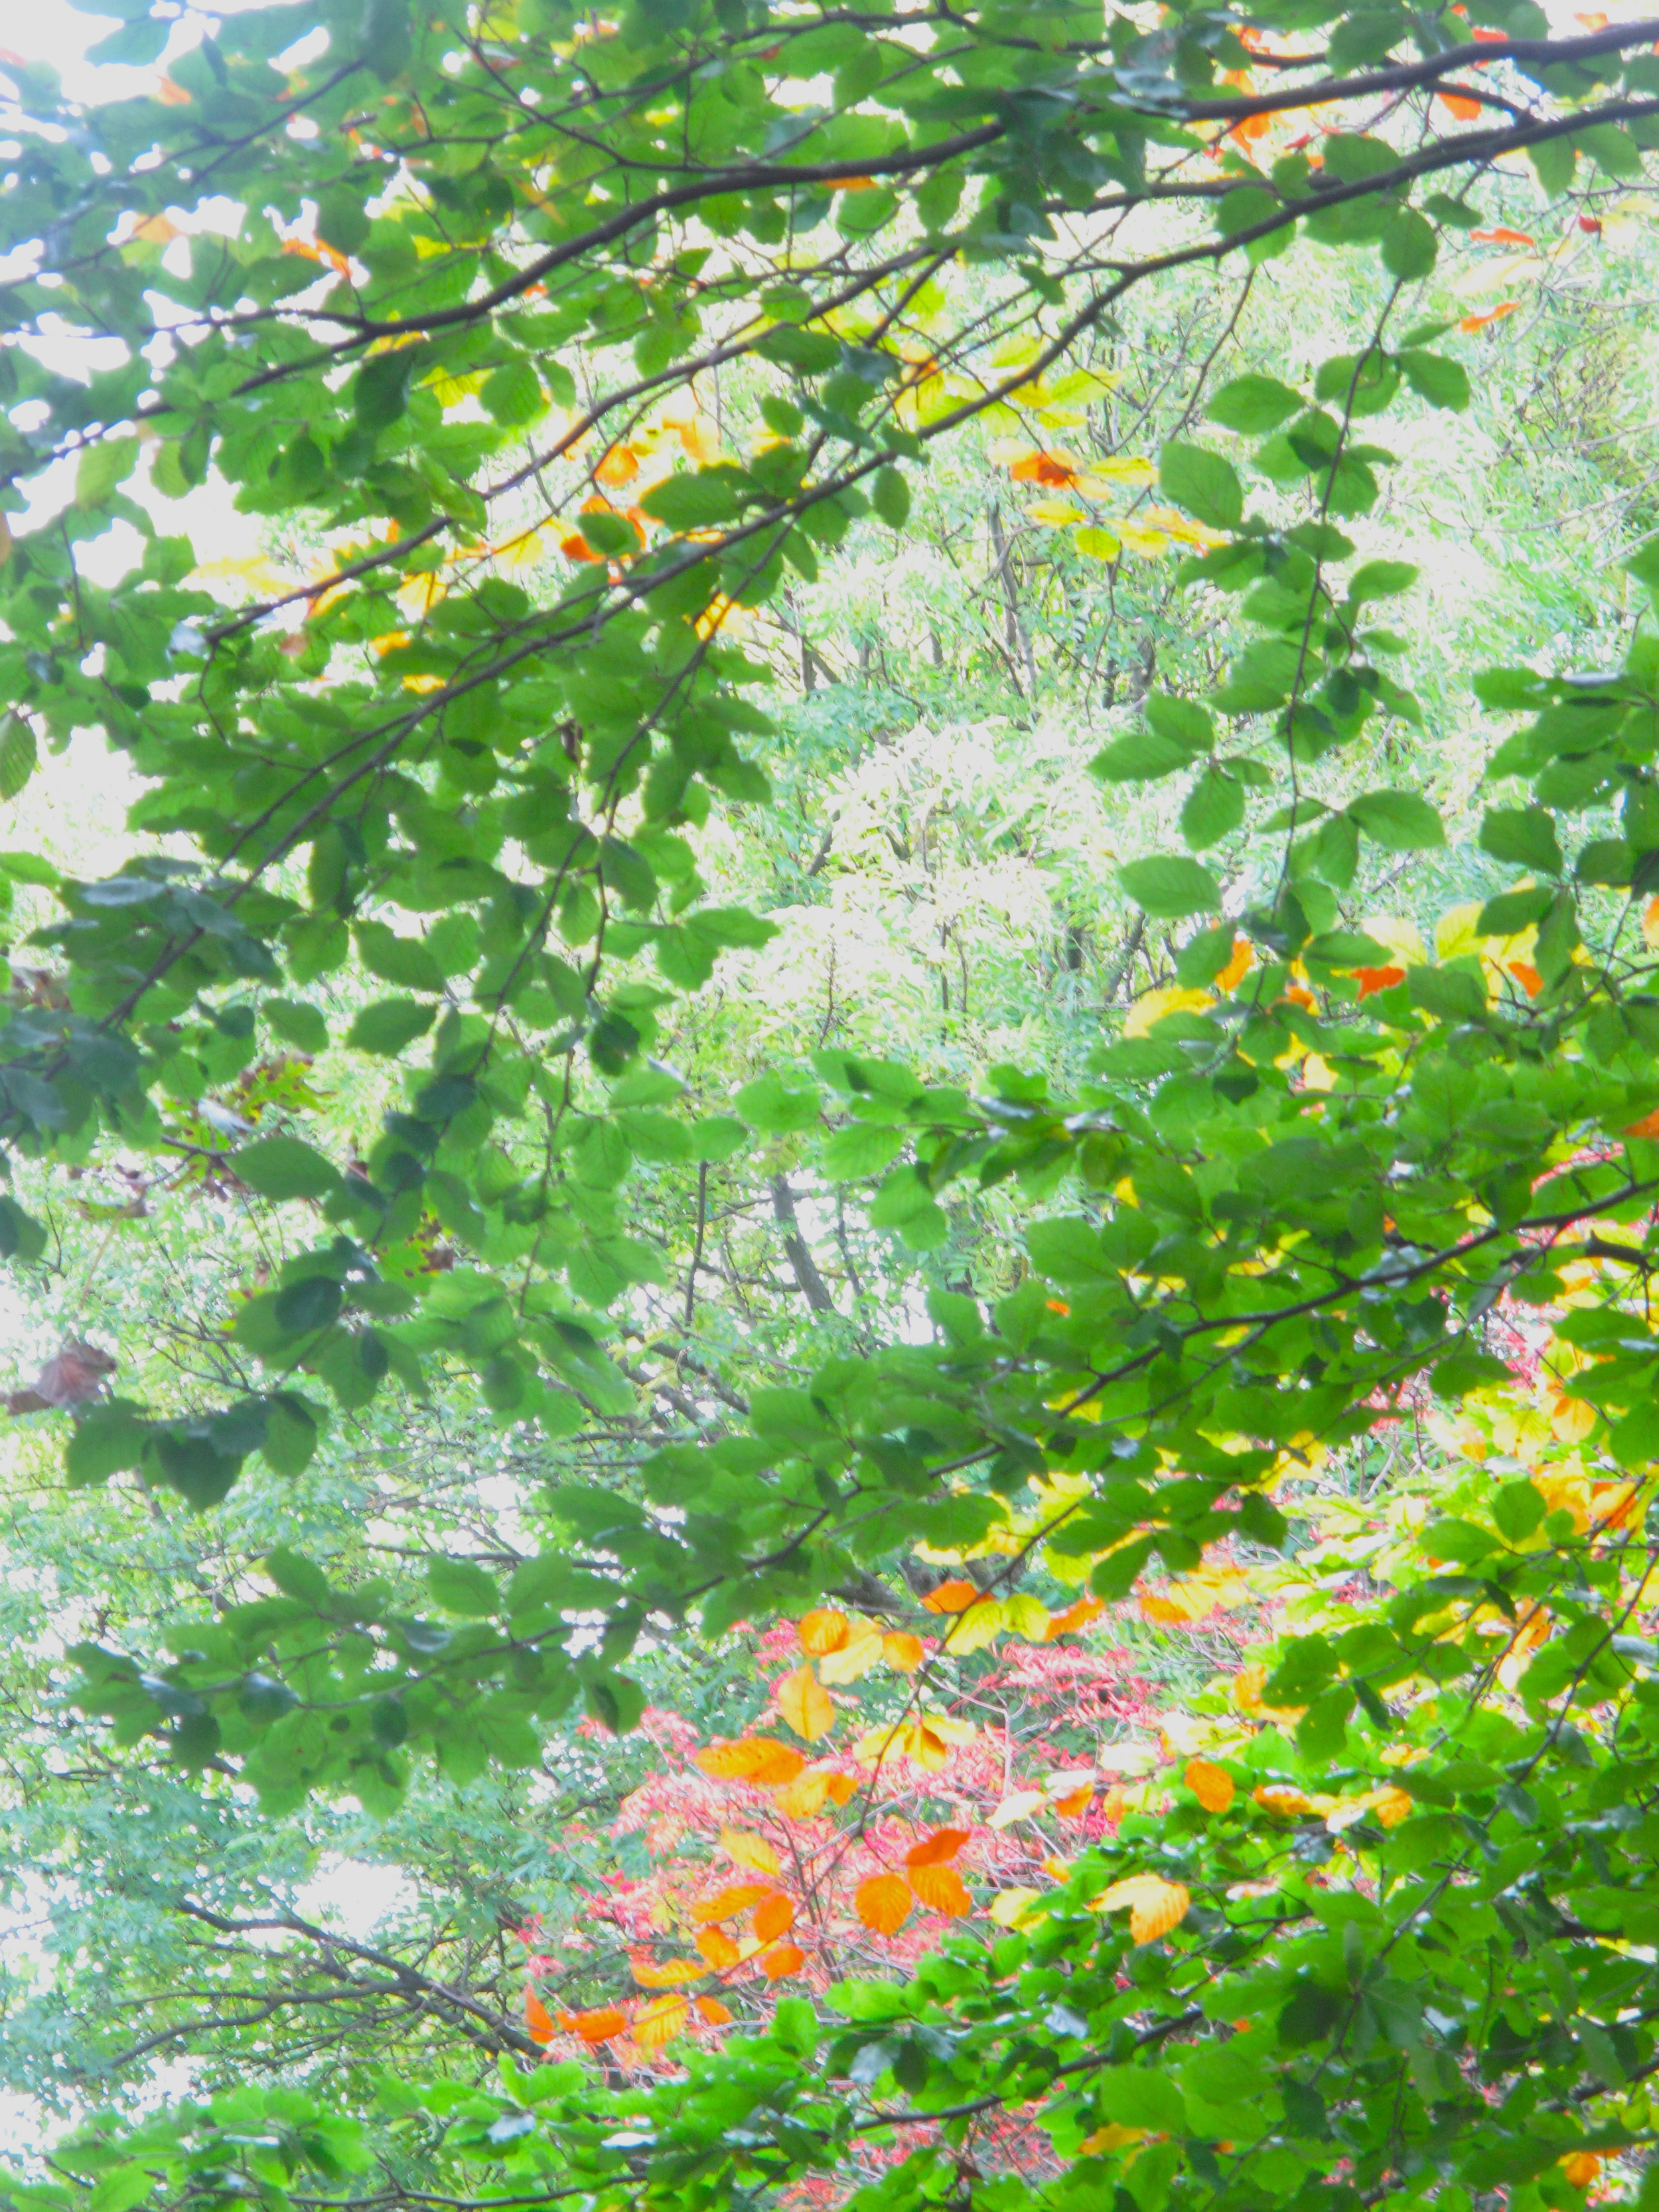 Autumn leaves - green, yellow and red.